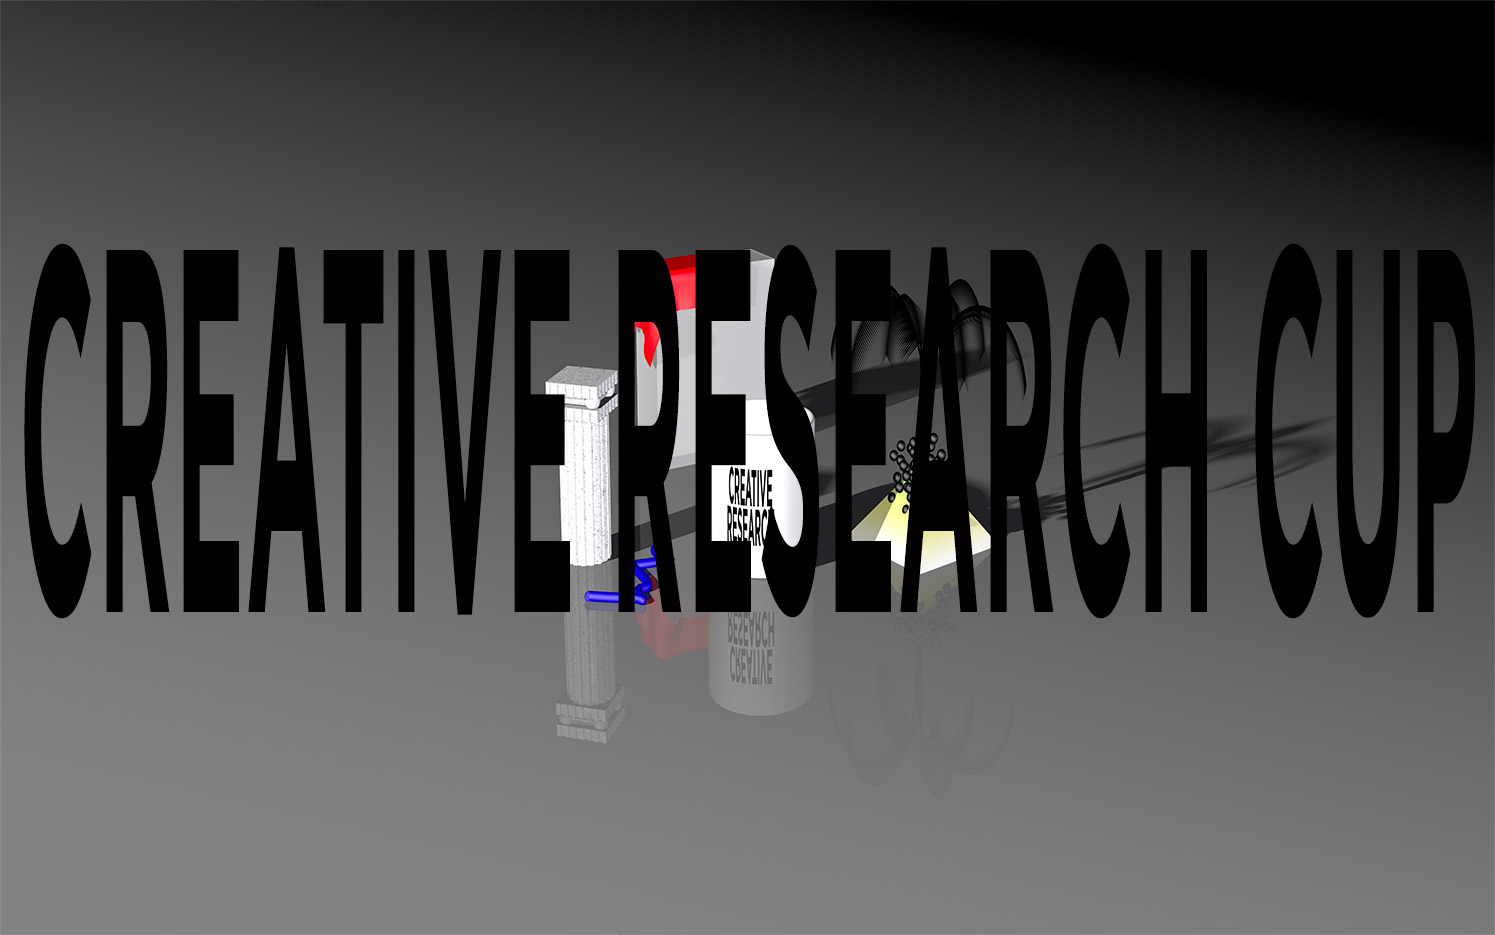 Creative Research Cup